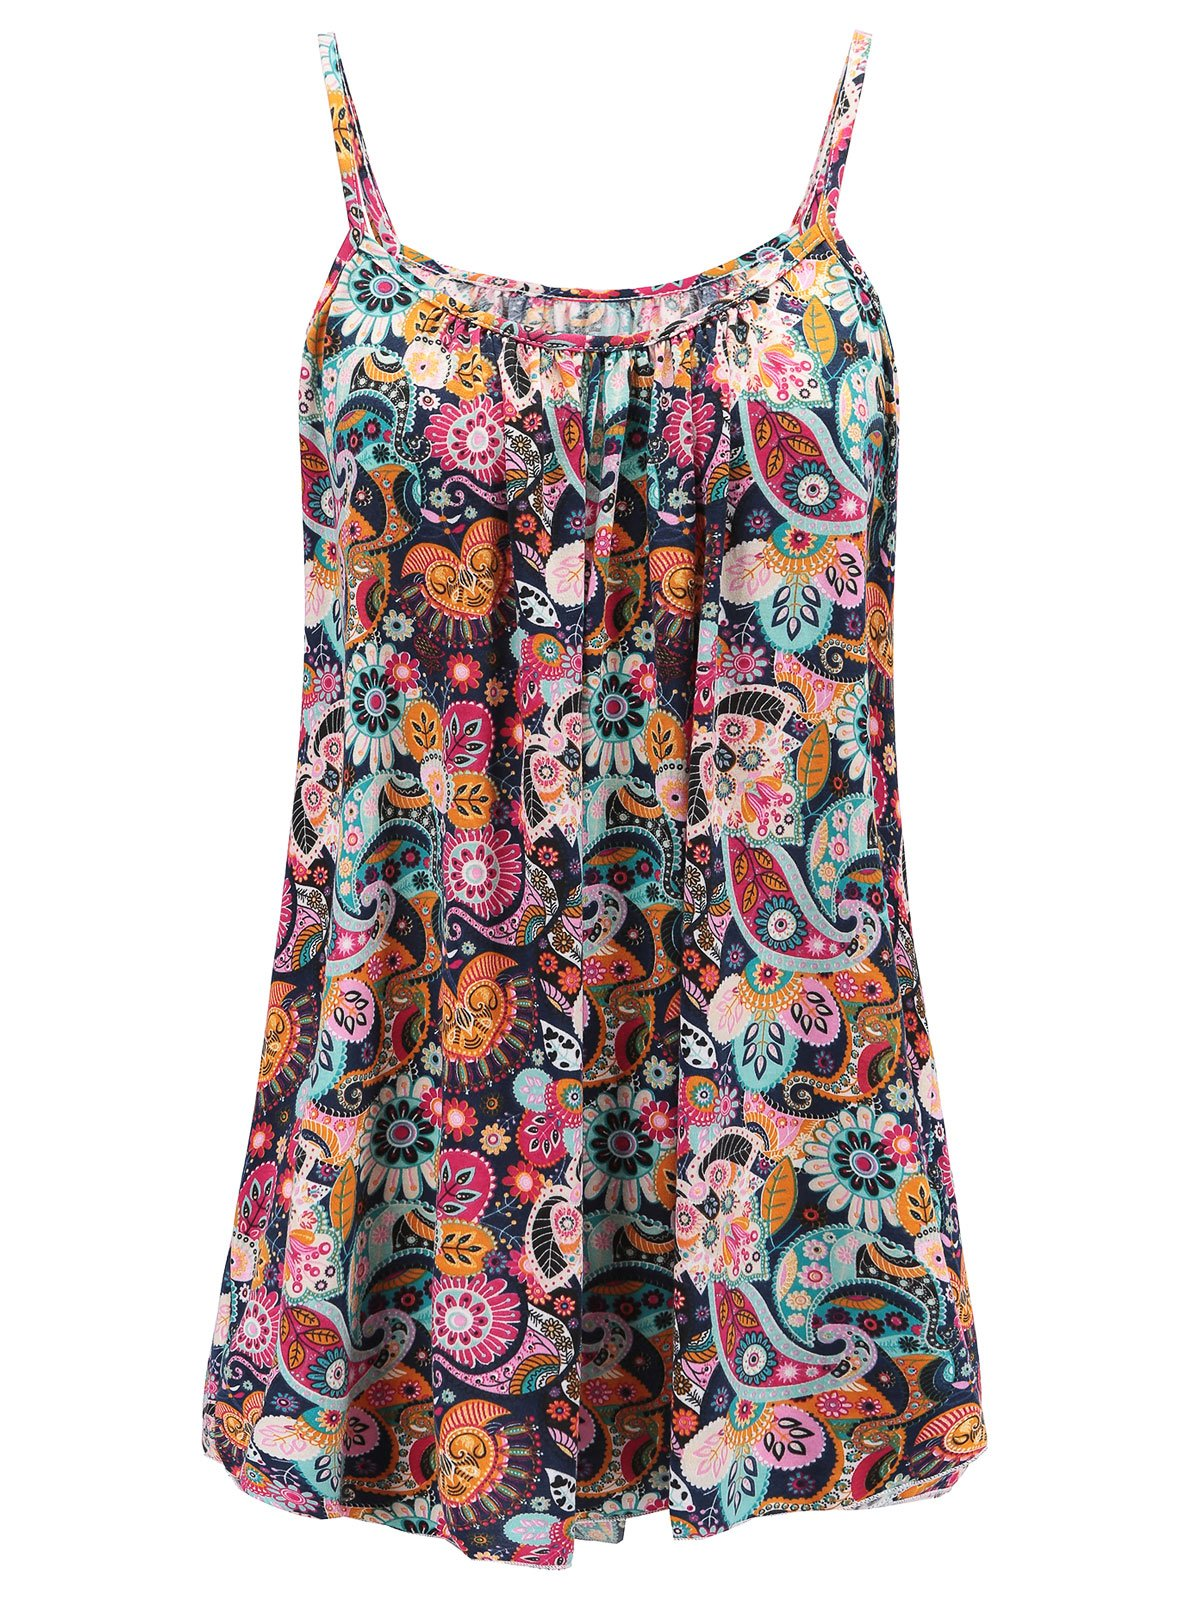 7th Element Womens Plus Size Cami Basic Camisole Tank Top (Floral Print - Boho 01,XL)